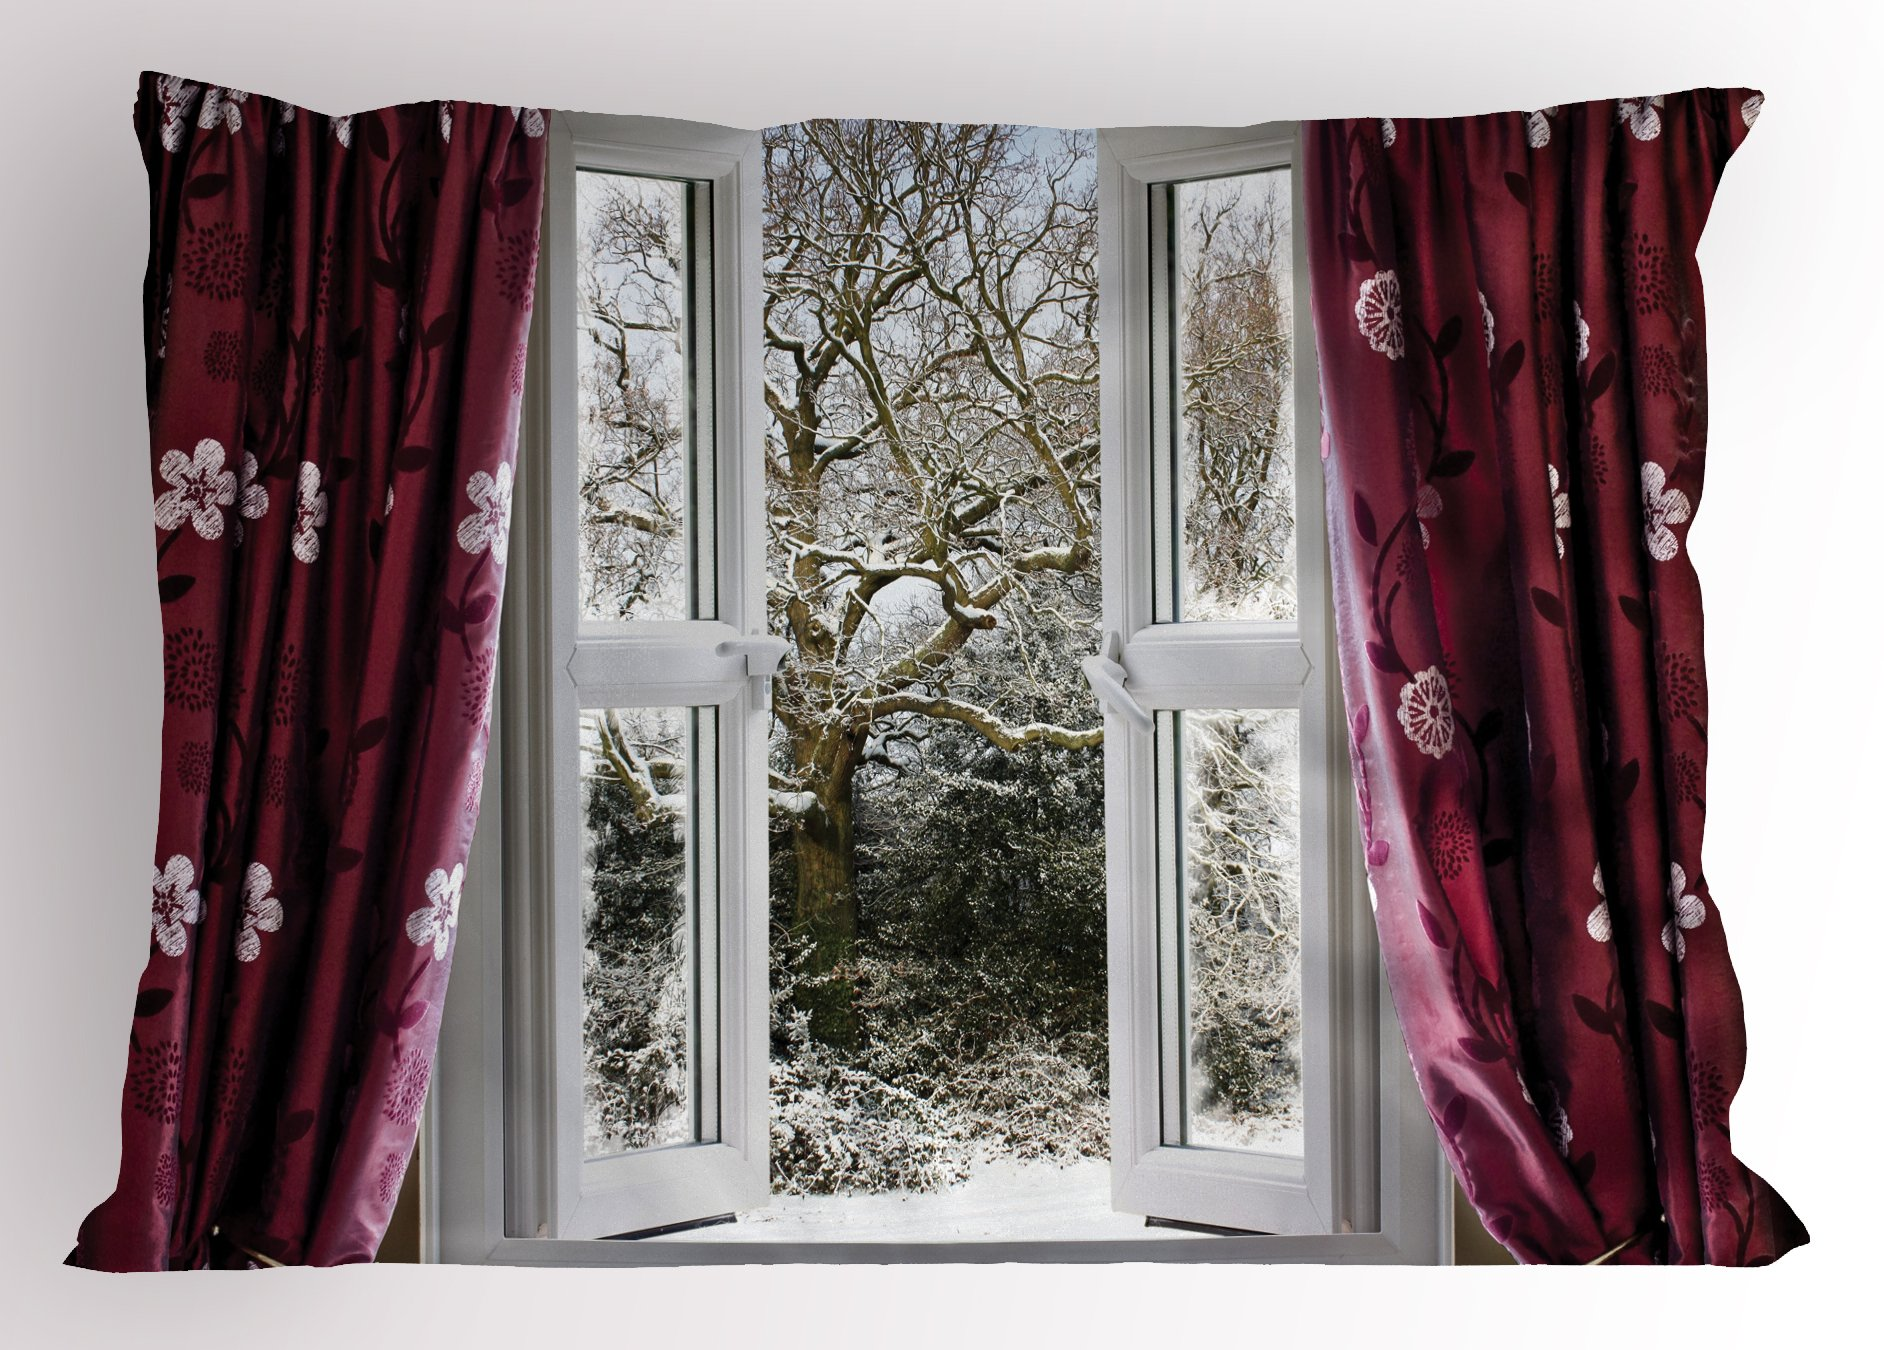 Ambesonne House Decor Pillow Sham, Open Window with View to a Snowy Winter Scene Pattern Curtain Drapes Frosty, Decorative Standard Queen Size Printed Pillowcase, 30 X 20 inches, Maroon White by Ambesonne (Image #1)